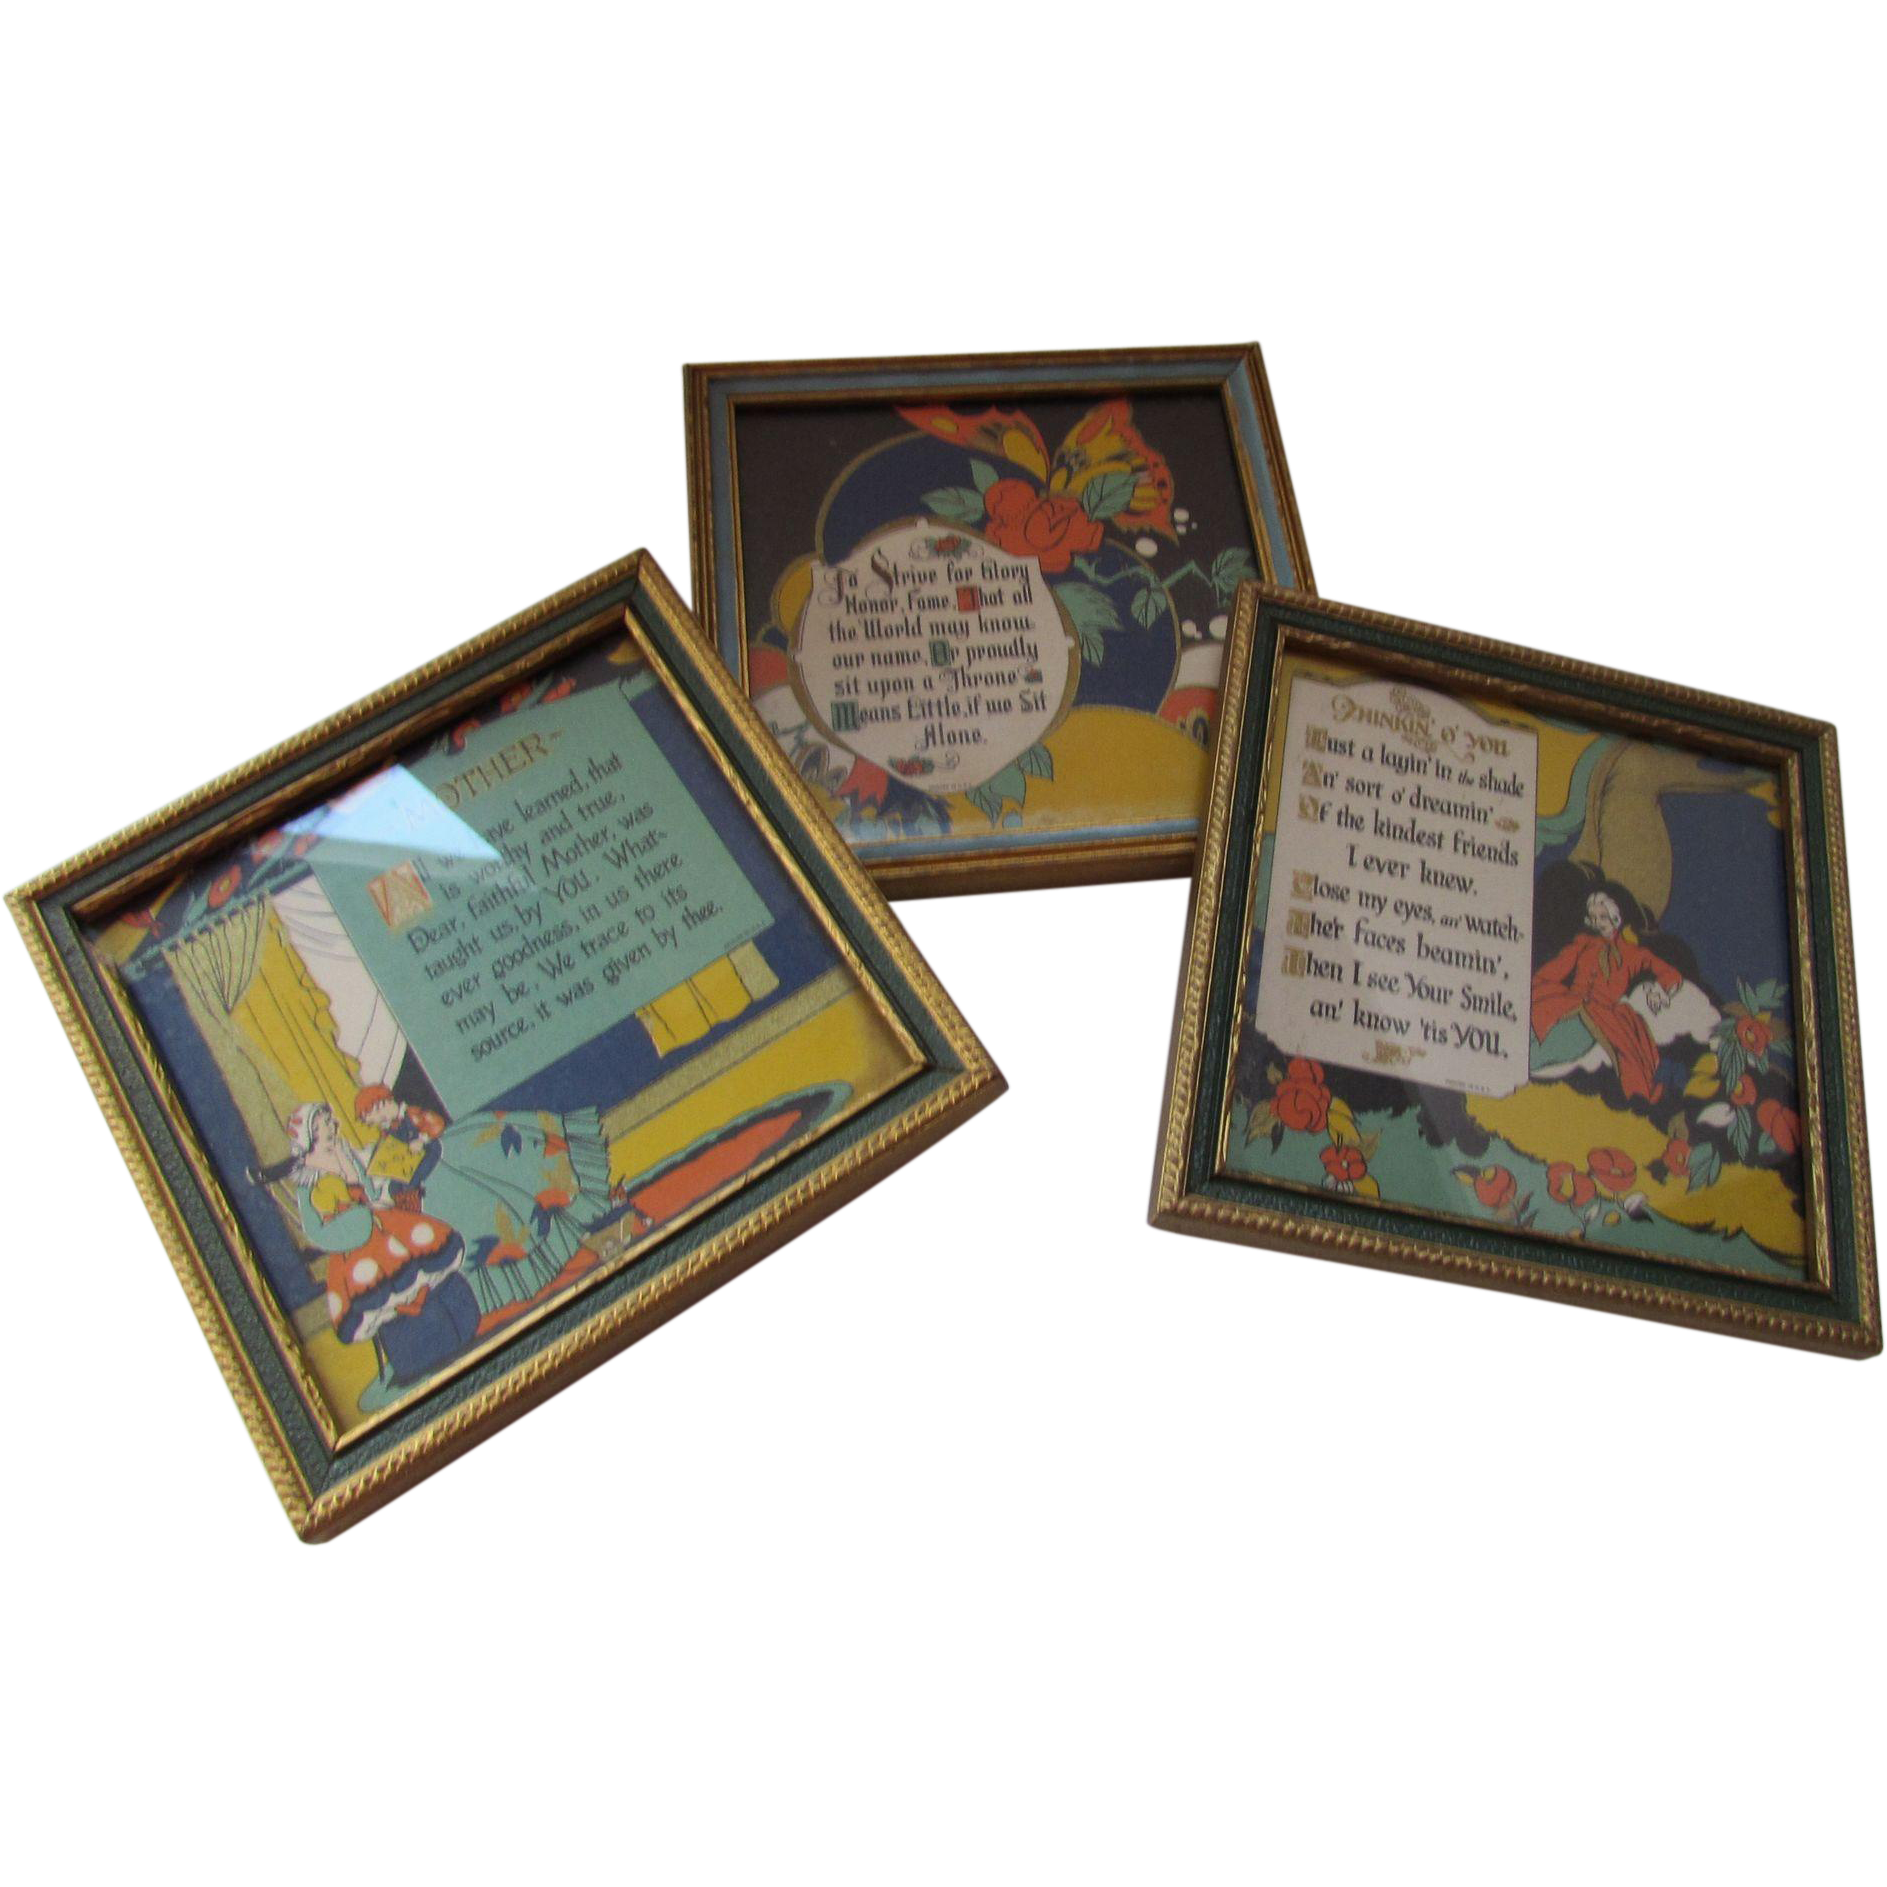 Trio Framed Poems or Homilies in 1930 Style Primary Colors